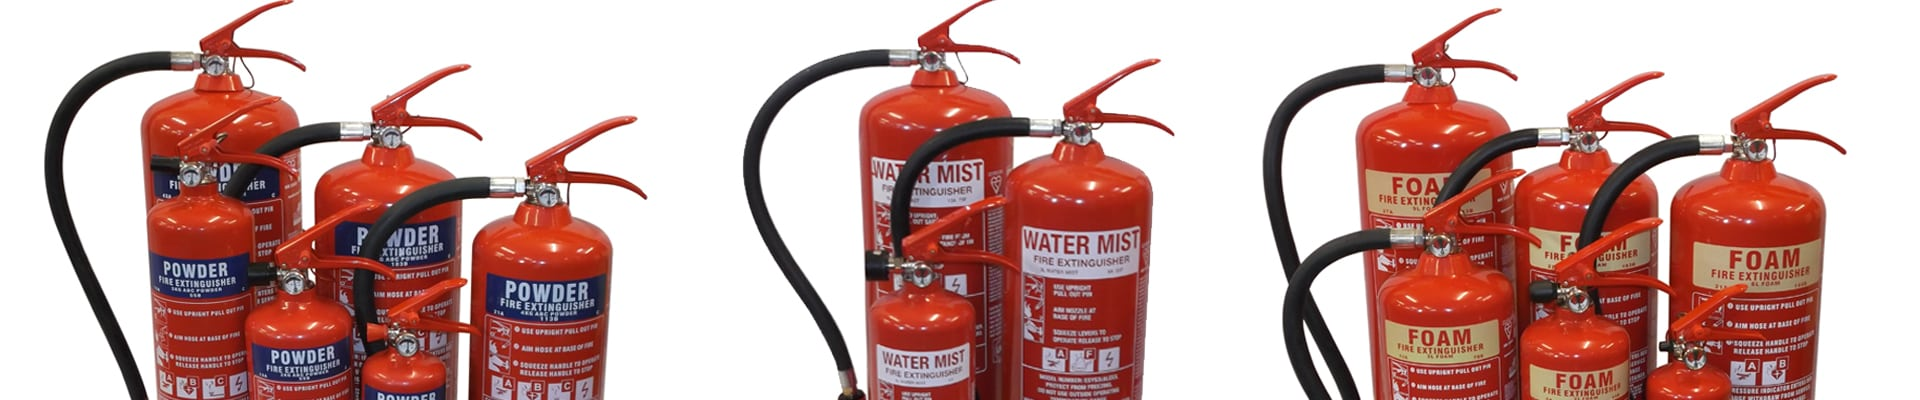 We supply, install and maintain fire extinguishers